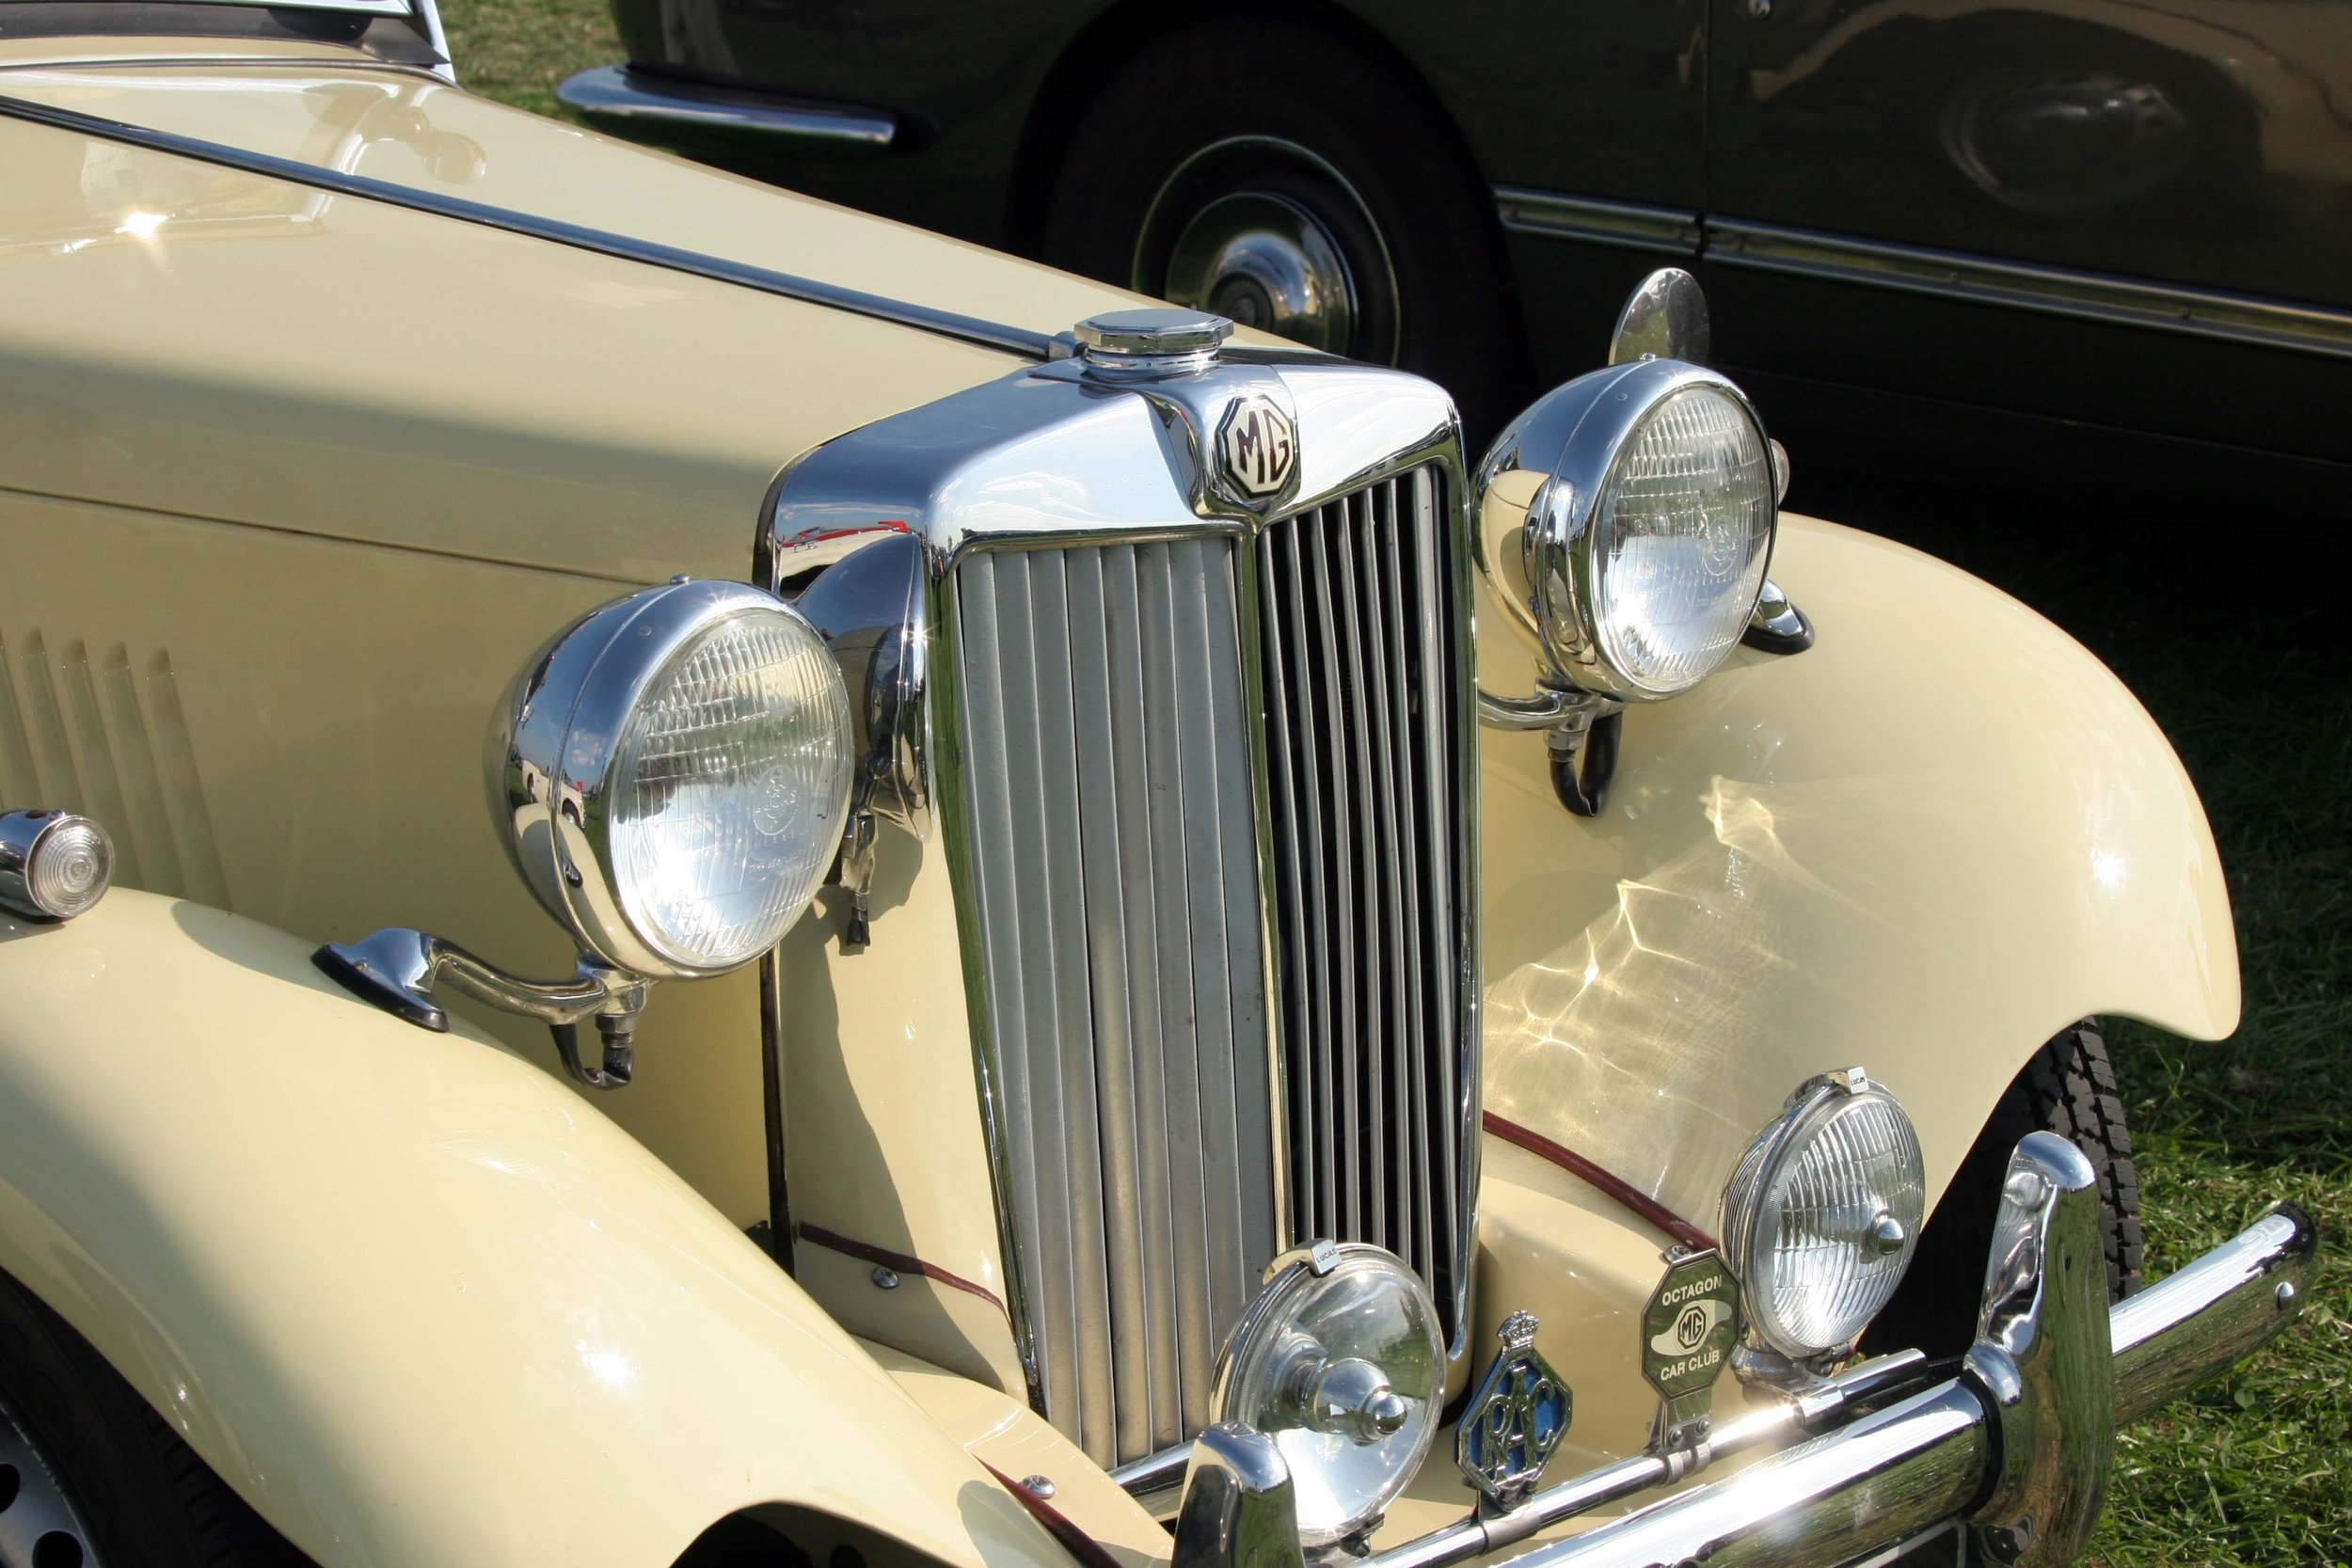 MG TD: The author's brother John had one